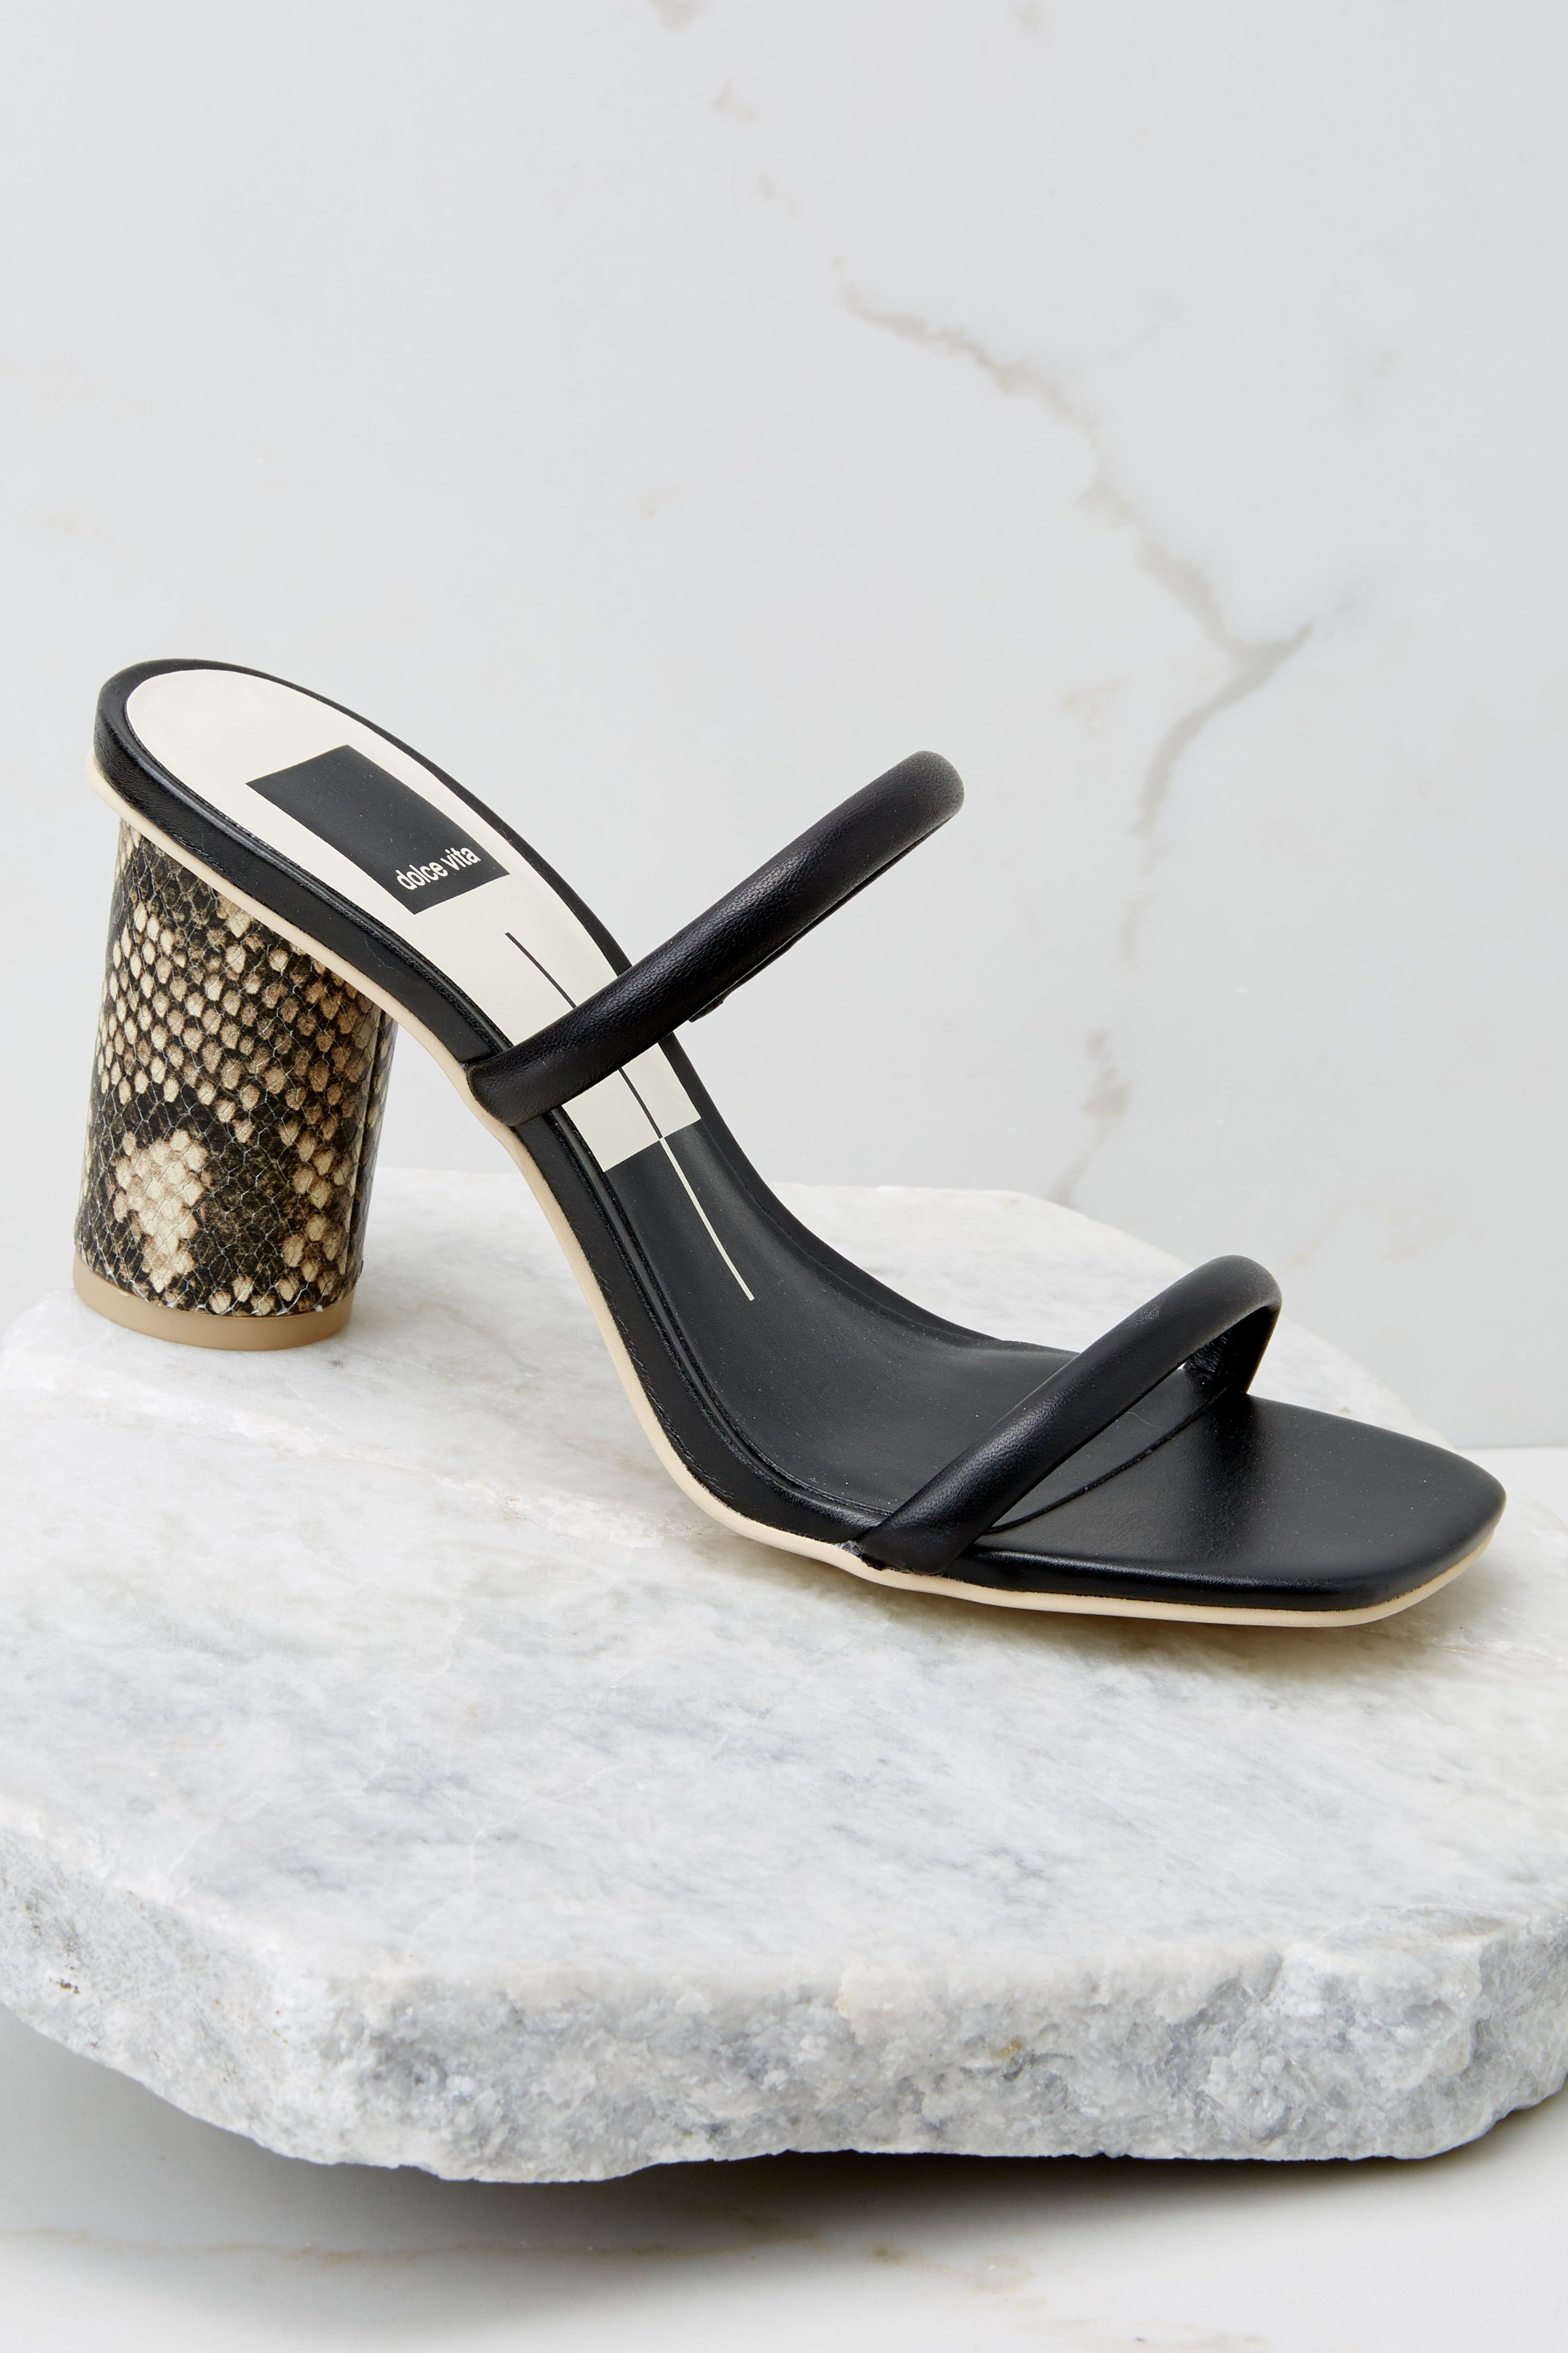 2 Noles Black Snakeskin High Heel Sandals at reddress.com